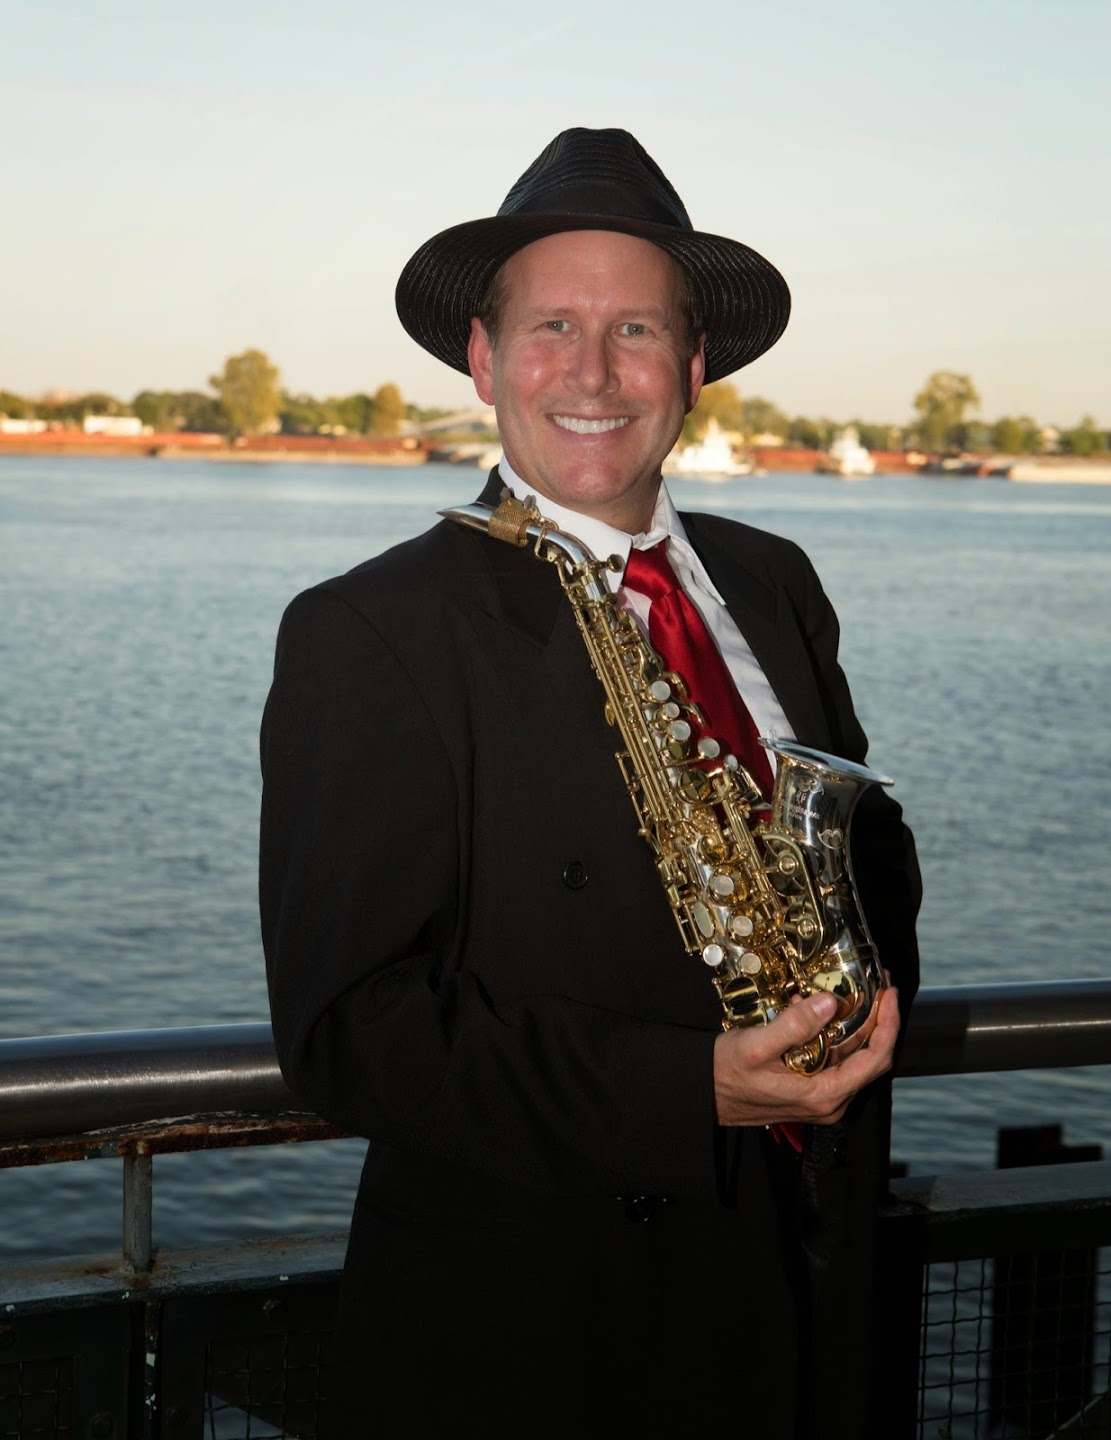 Jerry Embree - Director, Jazzman Entertainment